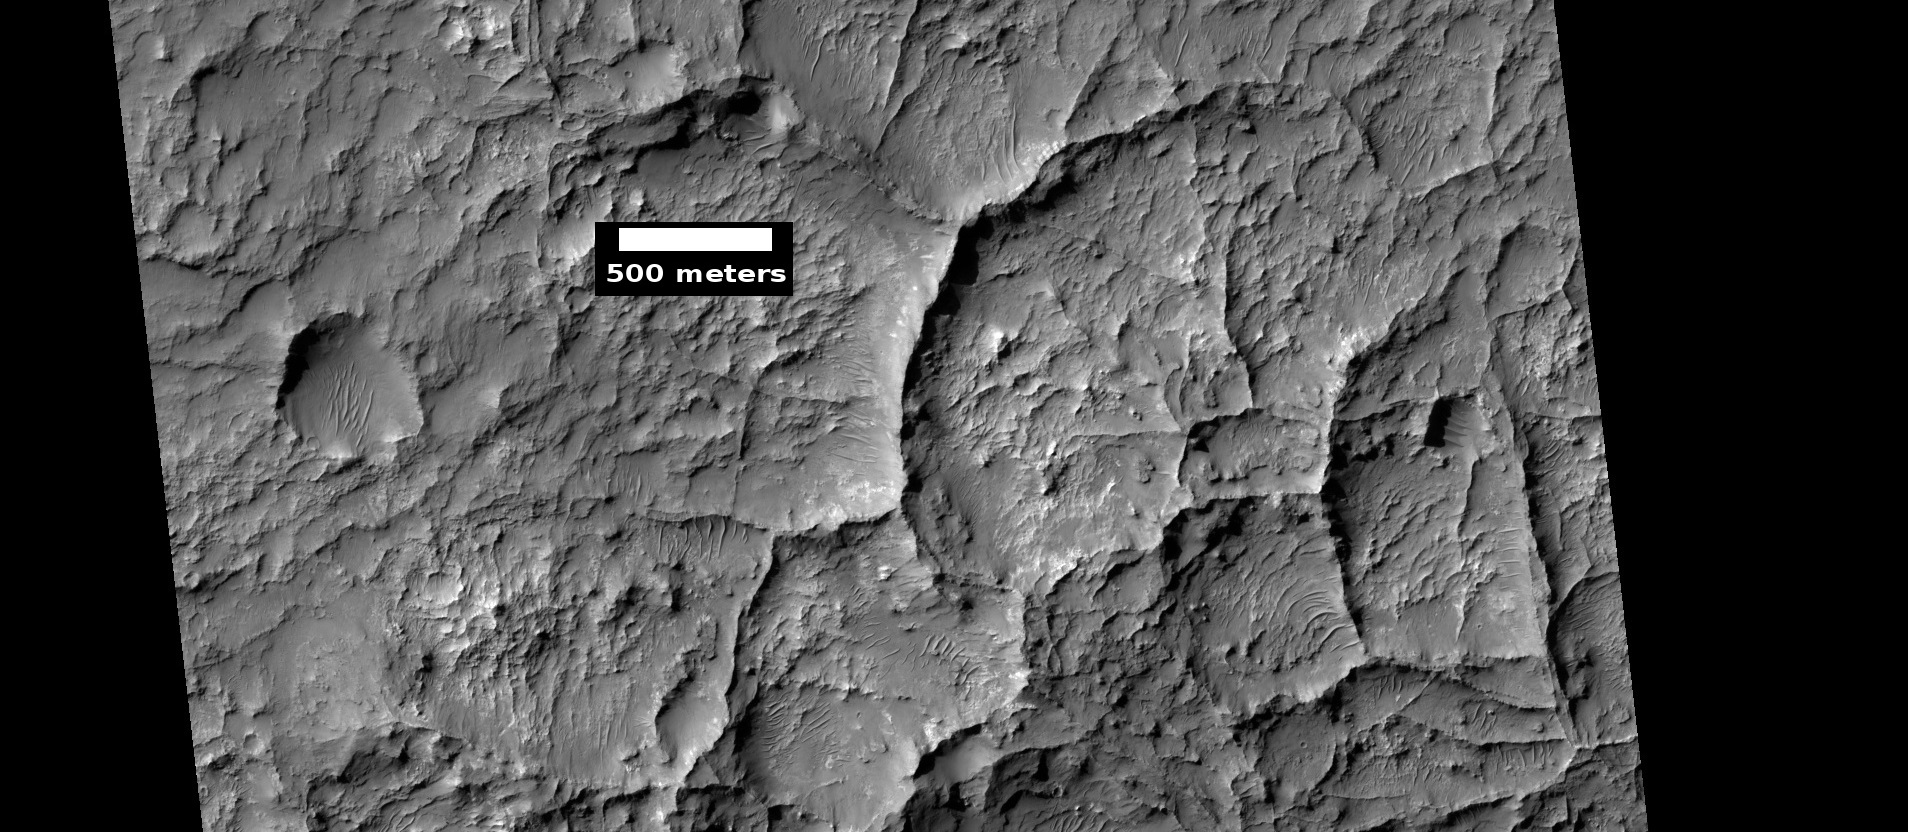 Linear ridge networks, as seen by HiRISE under HiWish program